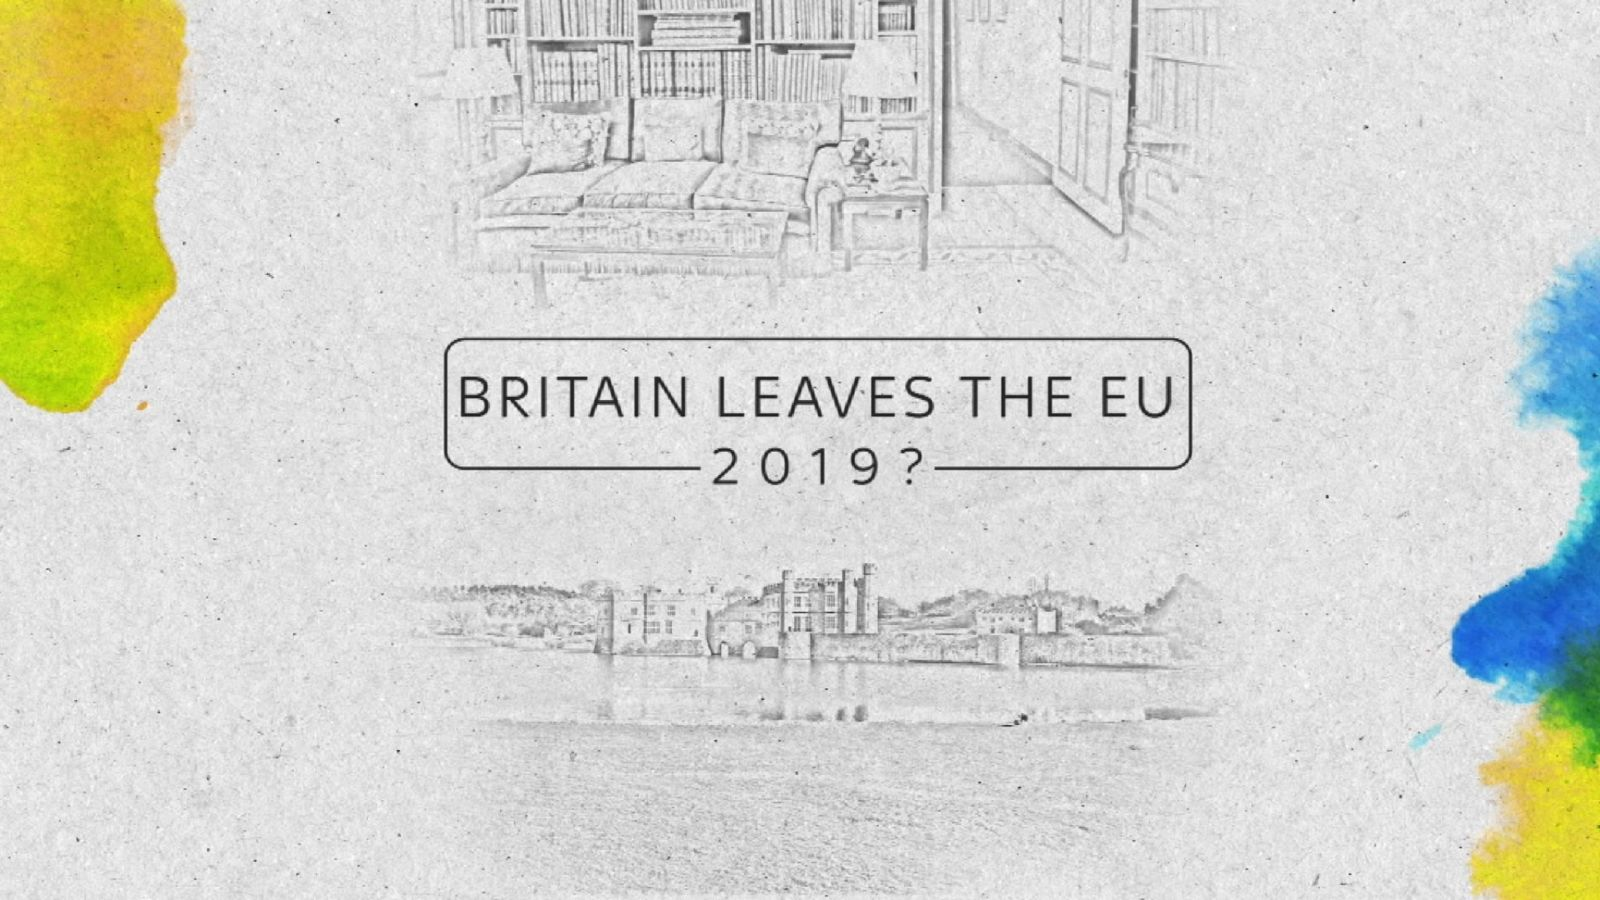 When exactly will the UK leave the EU?